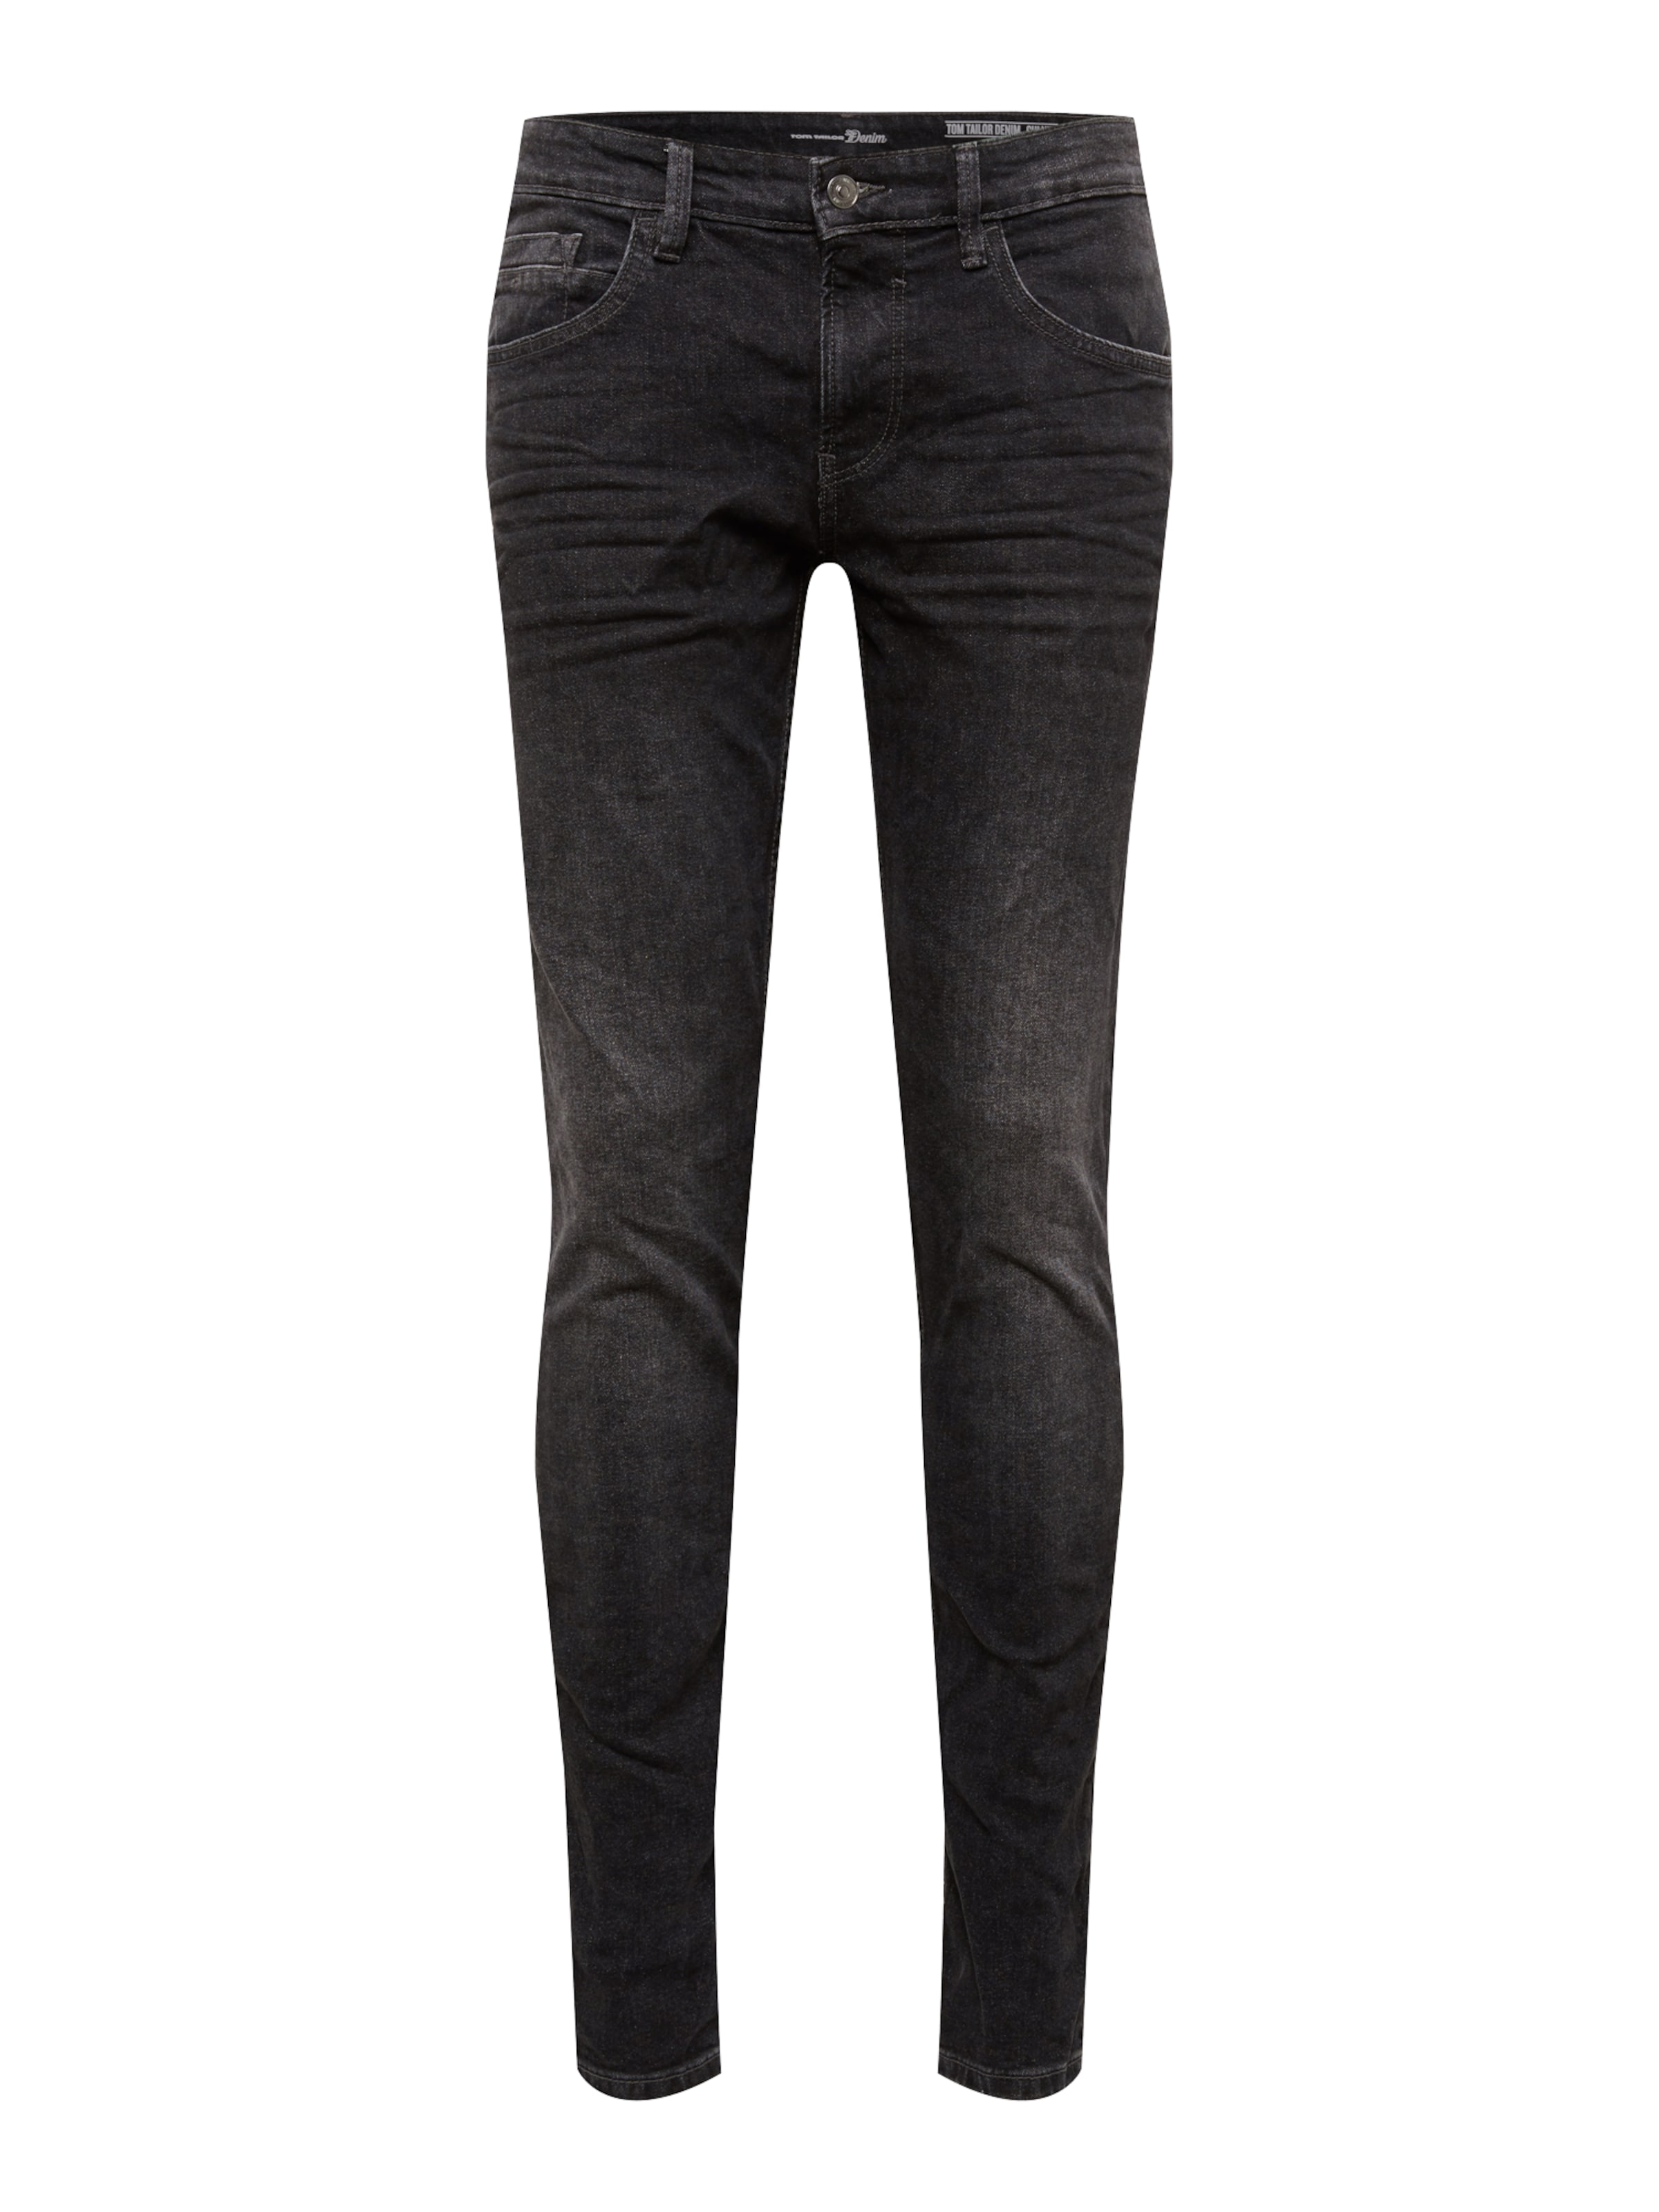 'culver' Denim Tailor In Black Jeans Tom SVqMGUzp